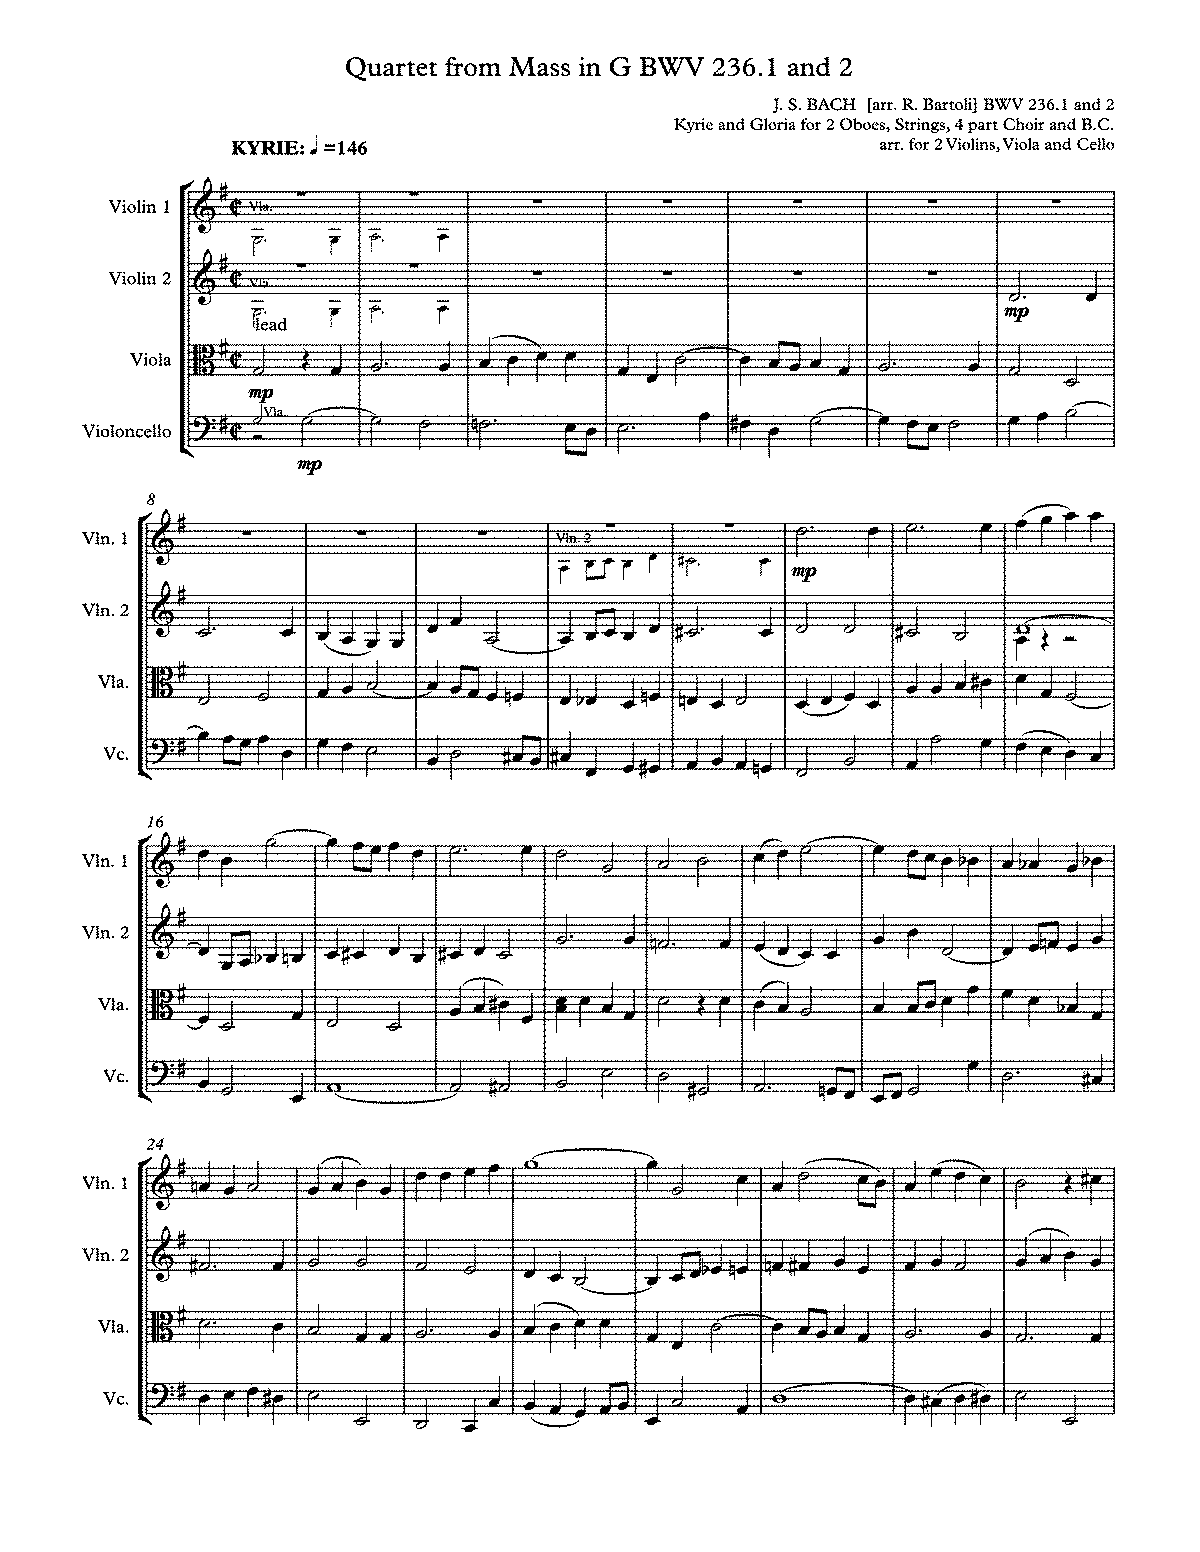 PMLP152293-bach 236.1 and 2 s4 Kyrie Gloria s4 RUSS ip - Full Score.pdf